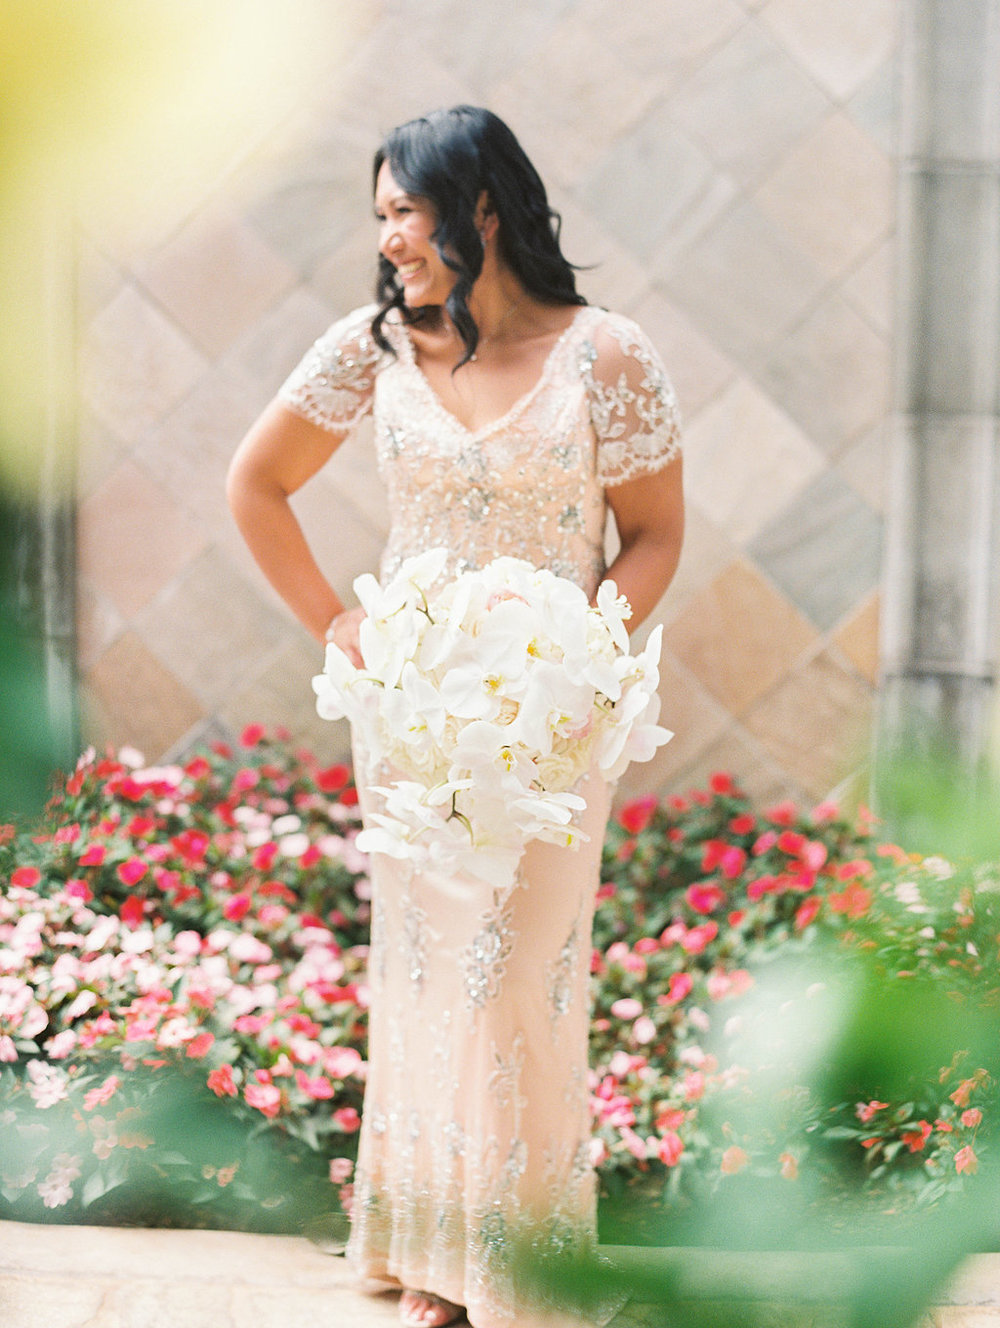 cascading white orchid bouquet by Passion Roots | Ashely Goodwin Photography | Oahu, Hawaii